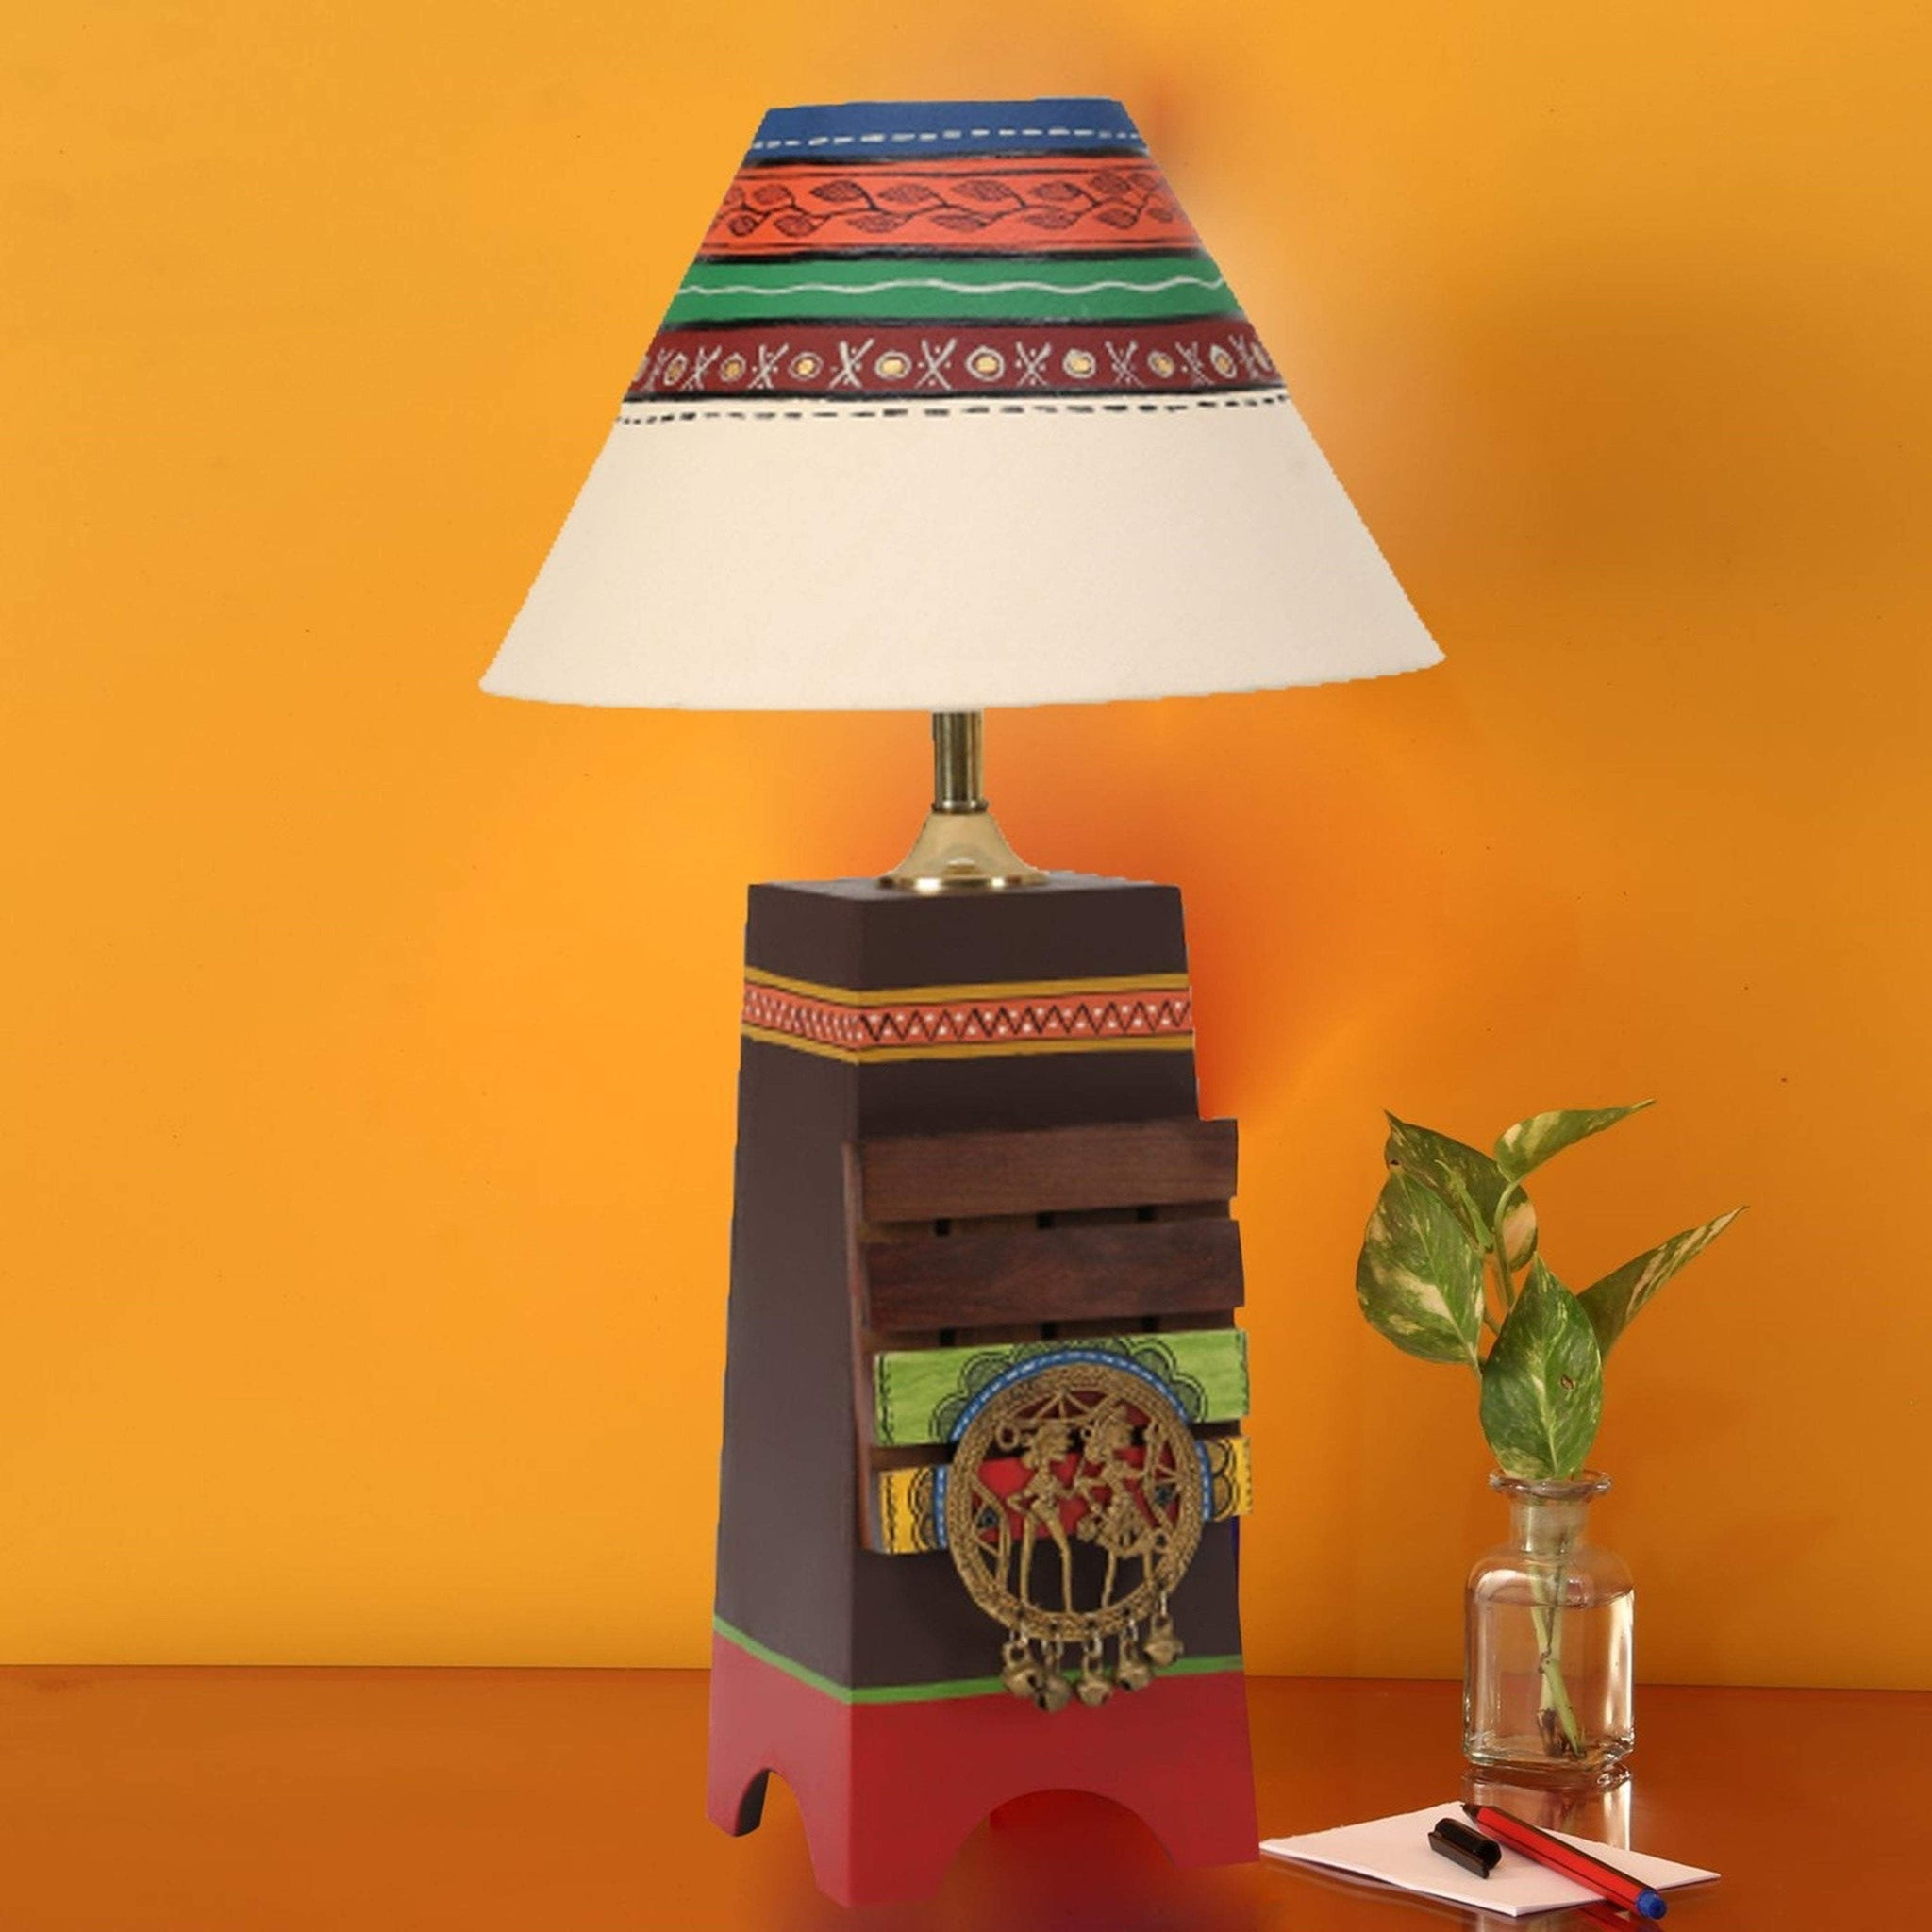 Decorative Wooden Table Lamp With Shade For Bedroom